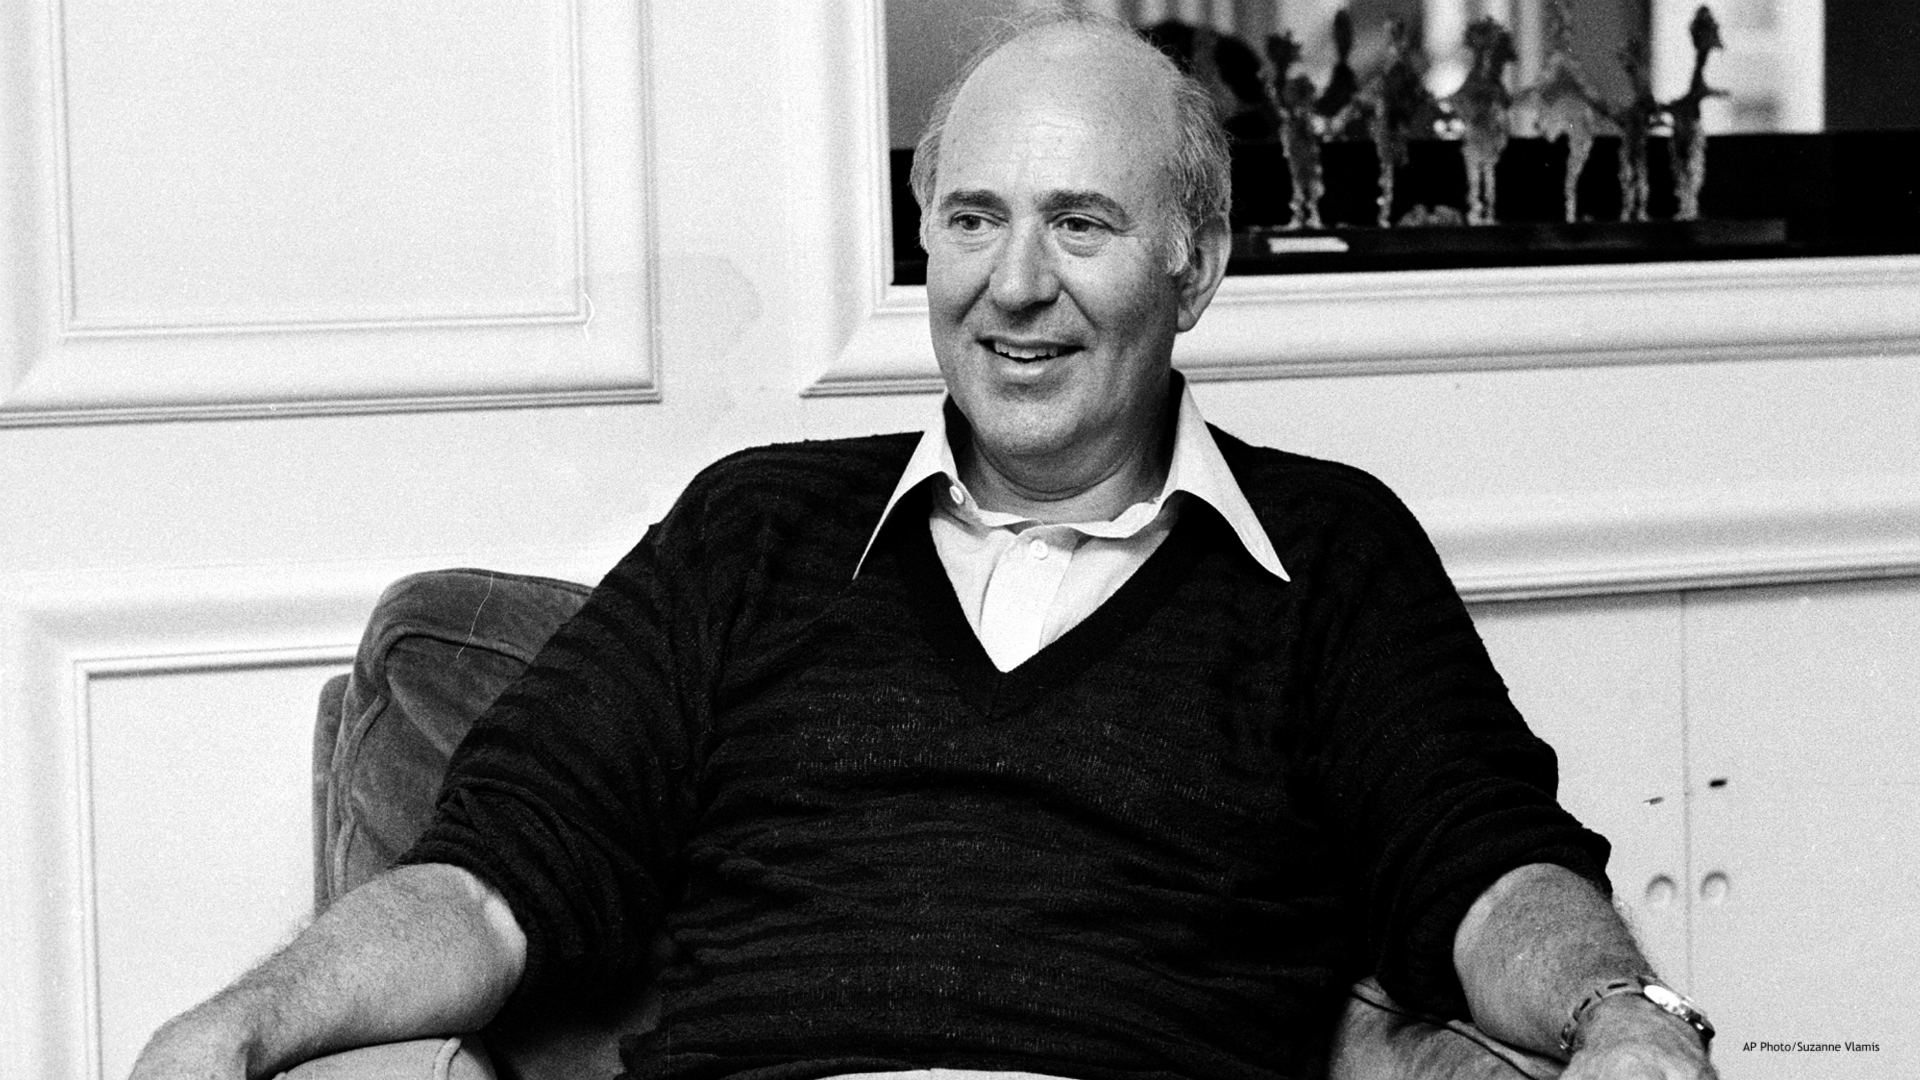 """In this Oct. 3, 1977 file photo, writer-director Carl Reiner appears during an interview about his movie """" Oh God!"""" in New York. Reiner, the ingenious and versatile writer, actor and director who broke through as a """"second banana"""" to Sid Caesar and rose to comedy's front ranks as creator of """"The Dick Van Dyke Show"""" and straight man to Mel Brooks' """"2000 Year Old Man,"""" has died, according to reports. Variety reported he died of natural causes on Monday night, June 29, 2020, at his home in Beverly Hills, Calif. He was 98. (AP Photo/Suzanne Vlamis)"""